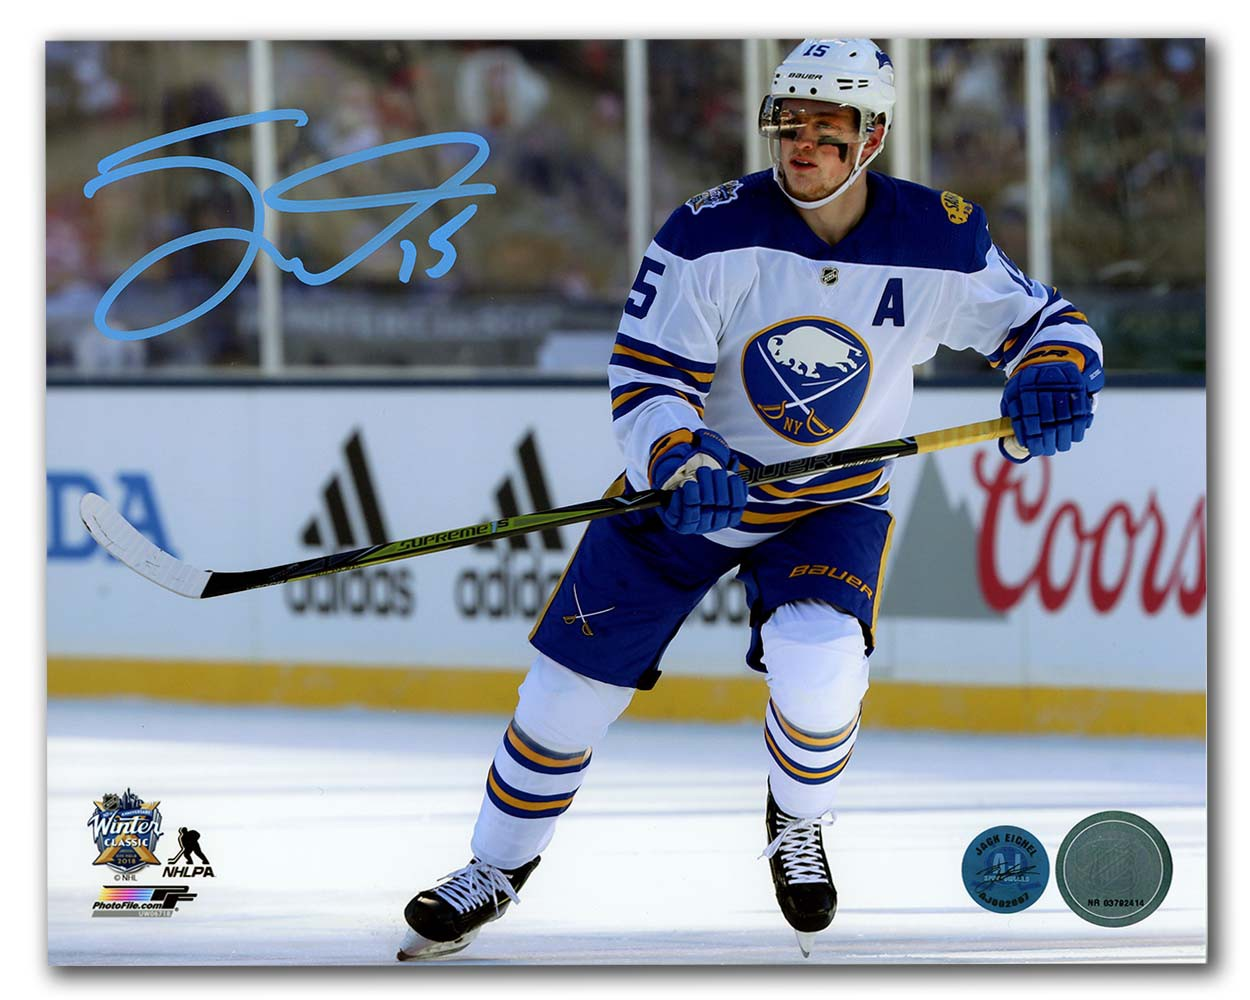 3b1361fe3 Jack Eichel Buffalo Sabres Autographed Signed 2018 Winter Classic 8x10  Photo - Certified Authentic